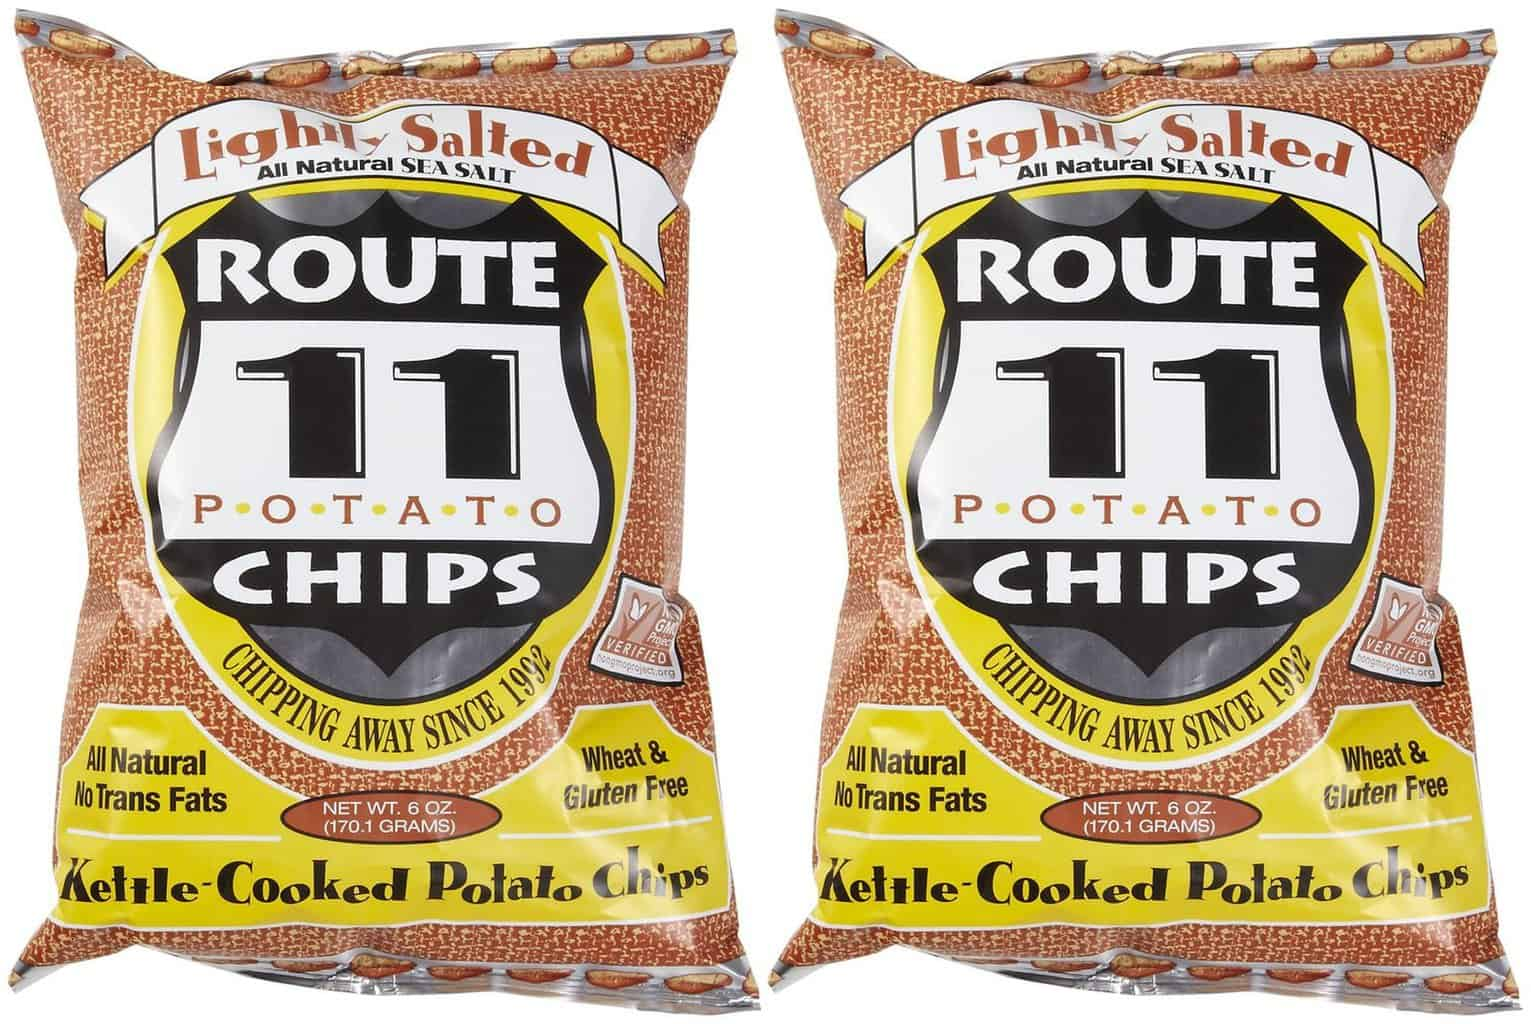 American Made Gluten-Free Snacks and Meals from USALoveListlcom including Route 11 Virginia Made Potato Chips